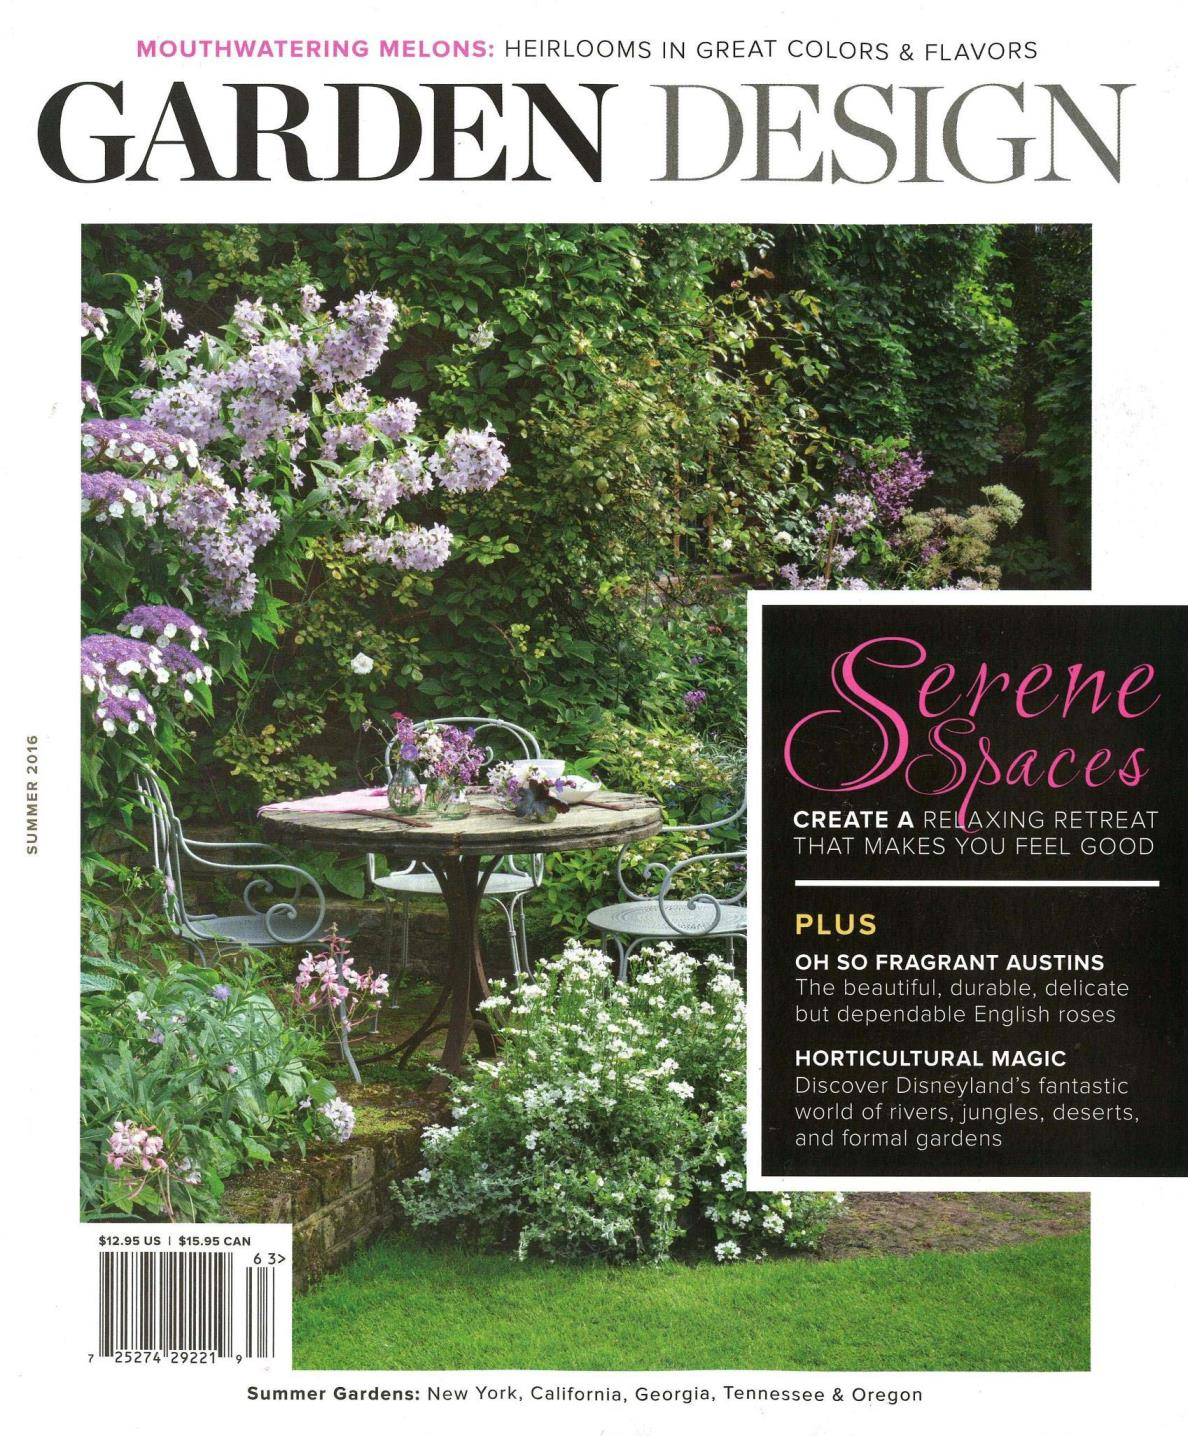 garden-desigN-REDUCED2